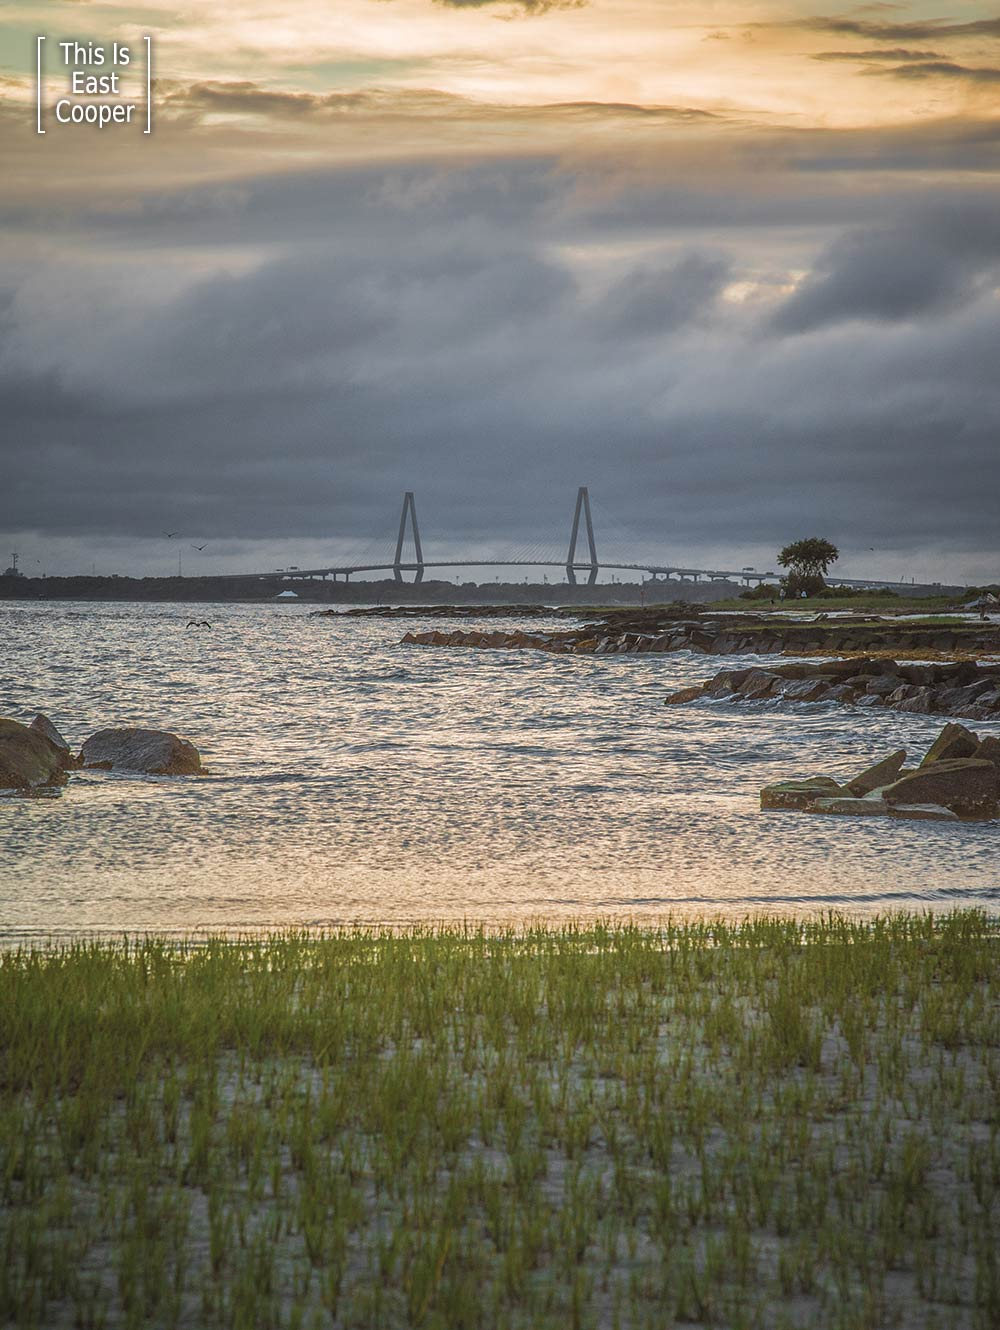 Storm Brewing Over the Ravenel (This is East Cooper)